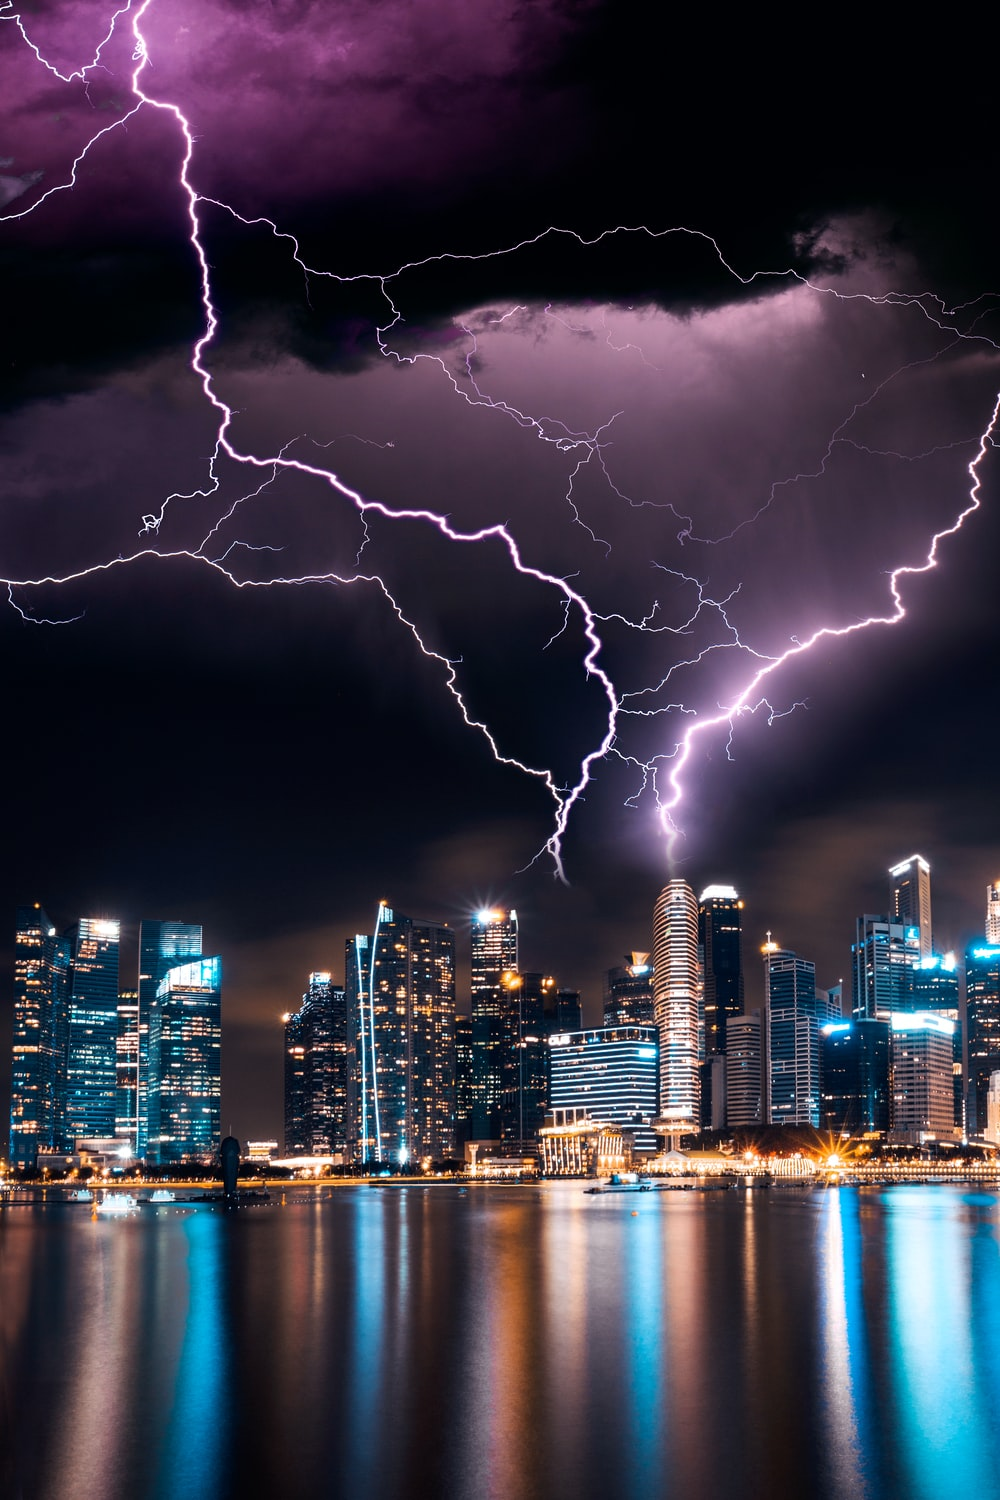 lightning storm over skyscrapers